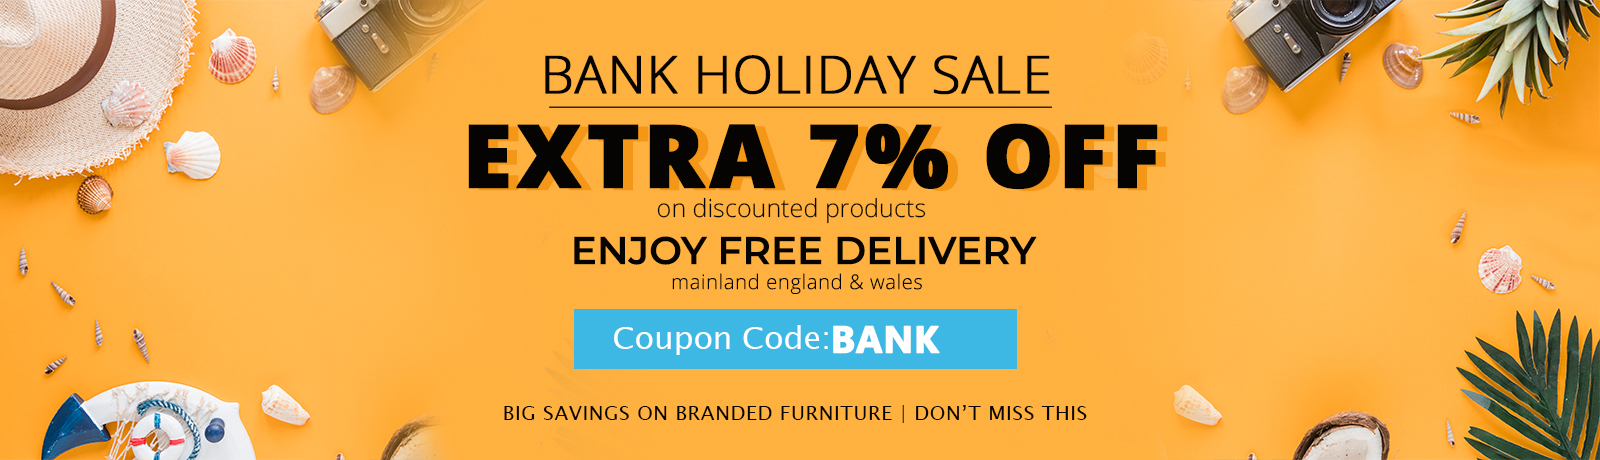 May Bank Holiday Sale at Online Furniture Store